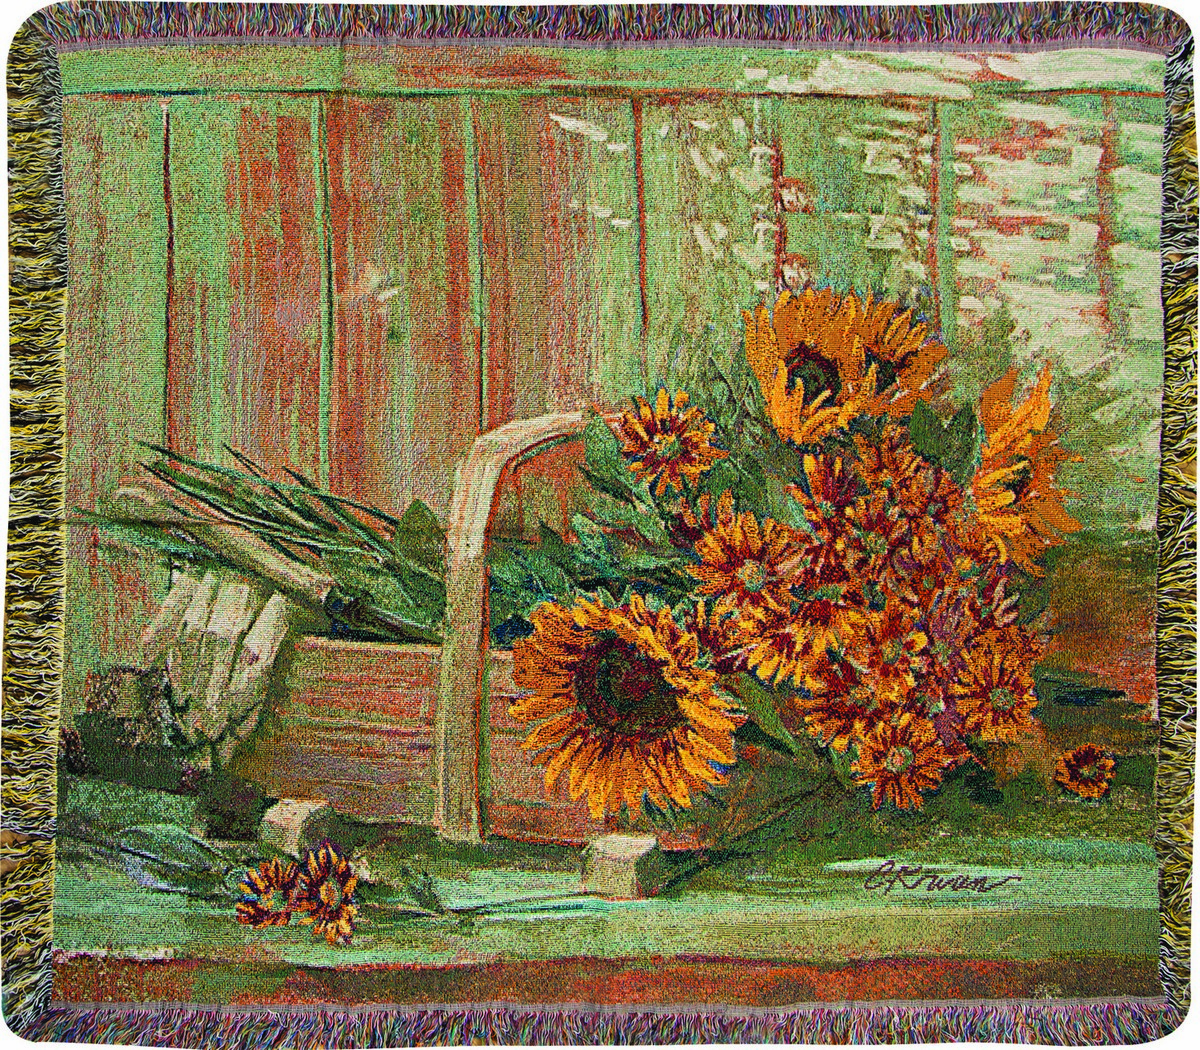 Harvest Moon Sunflowers Tapestry Throw